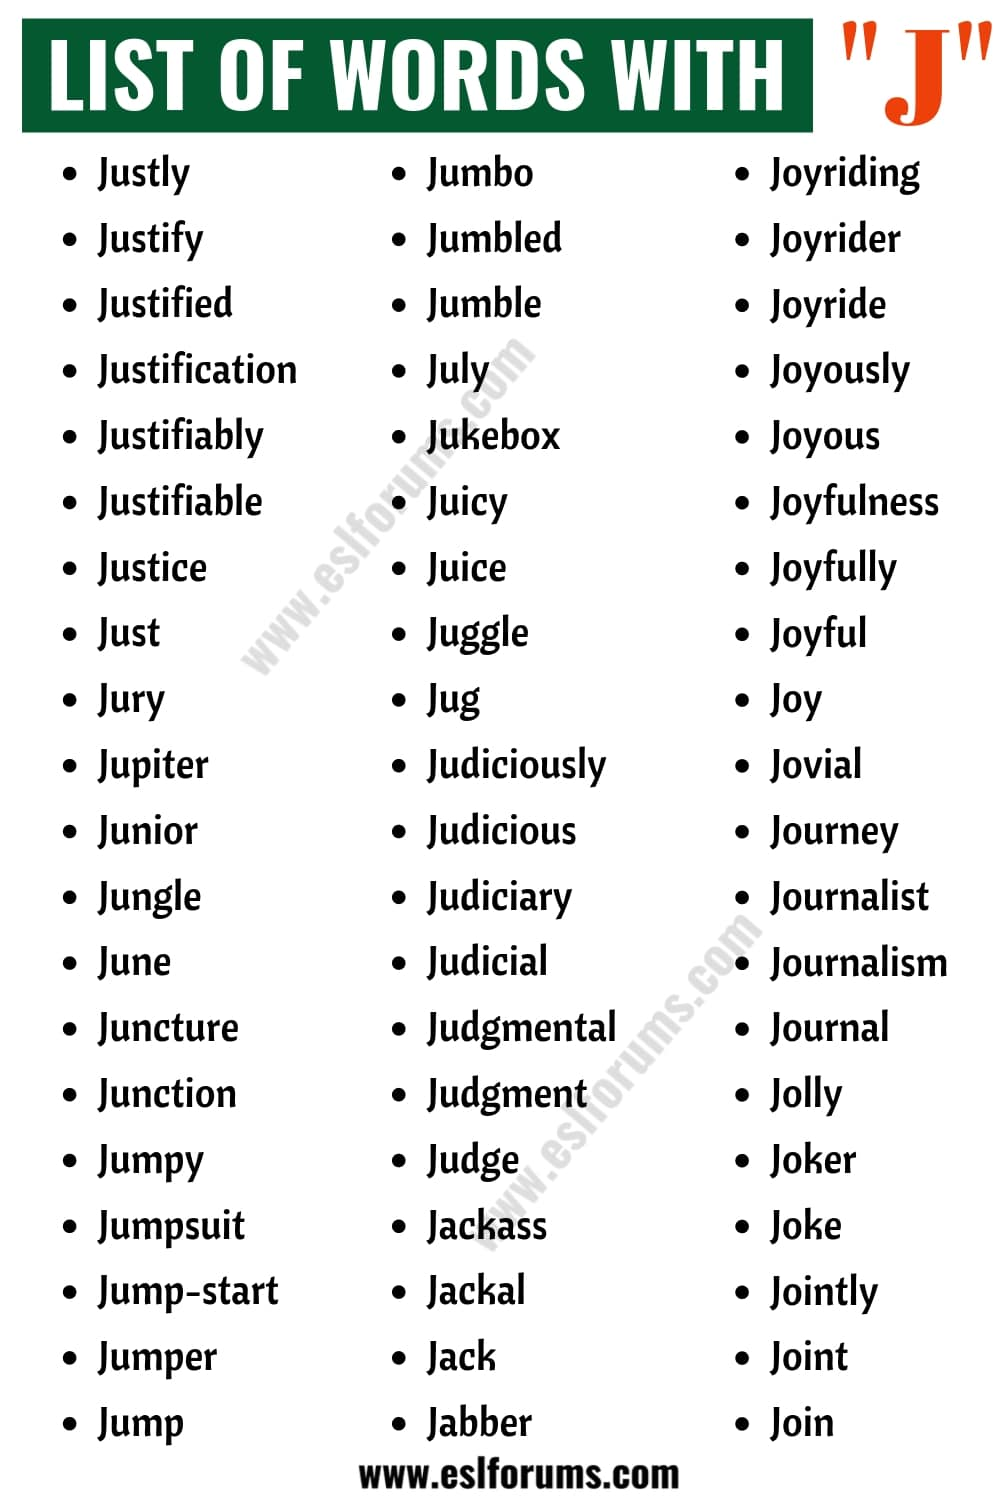 Words that Start with J | List of 200+ Common J Words in English